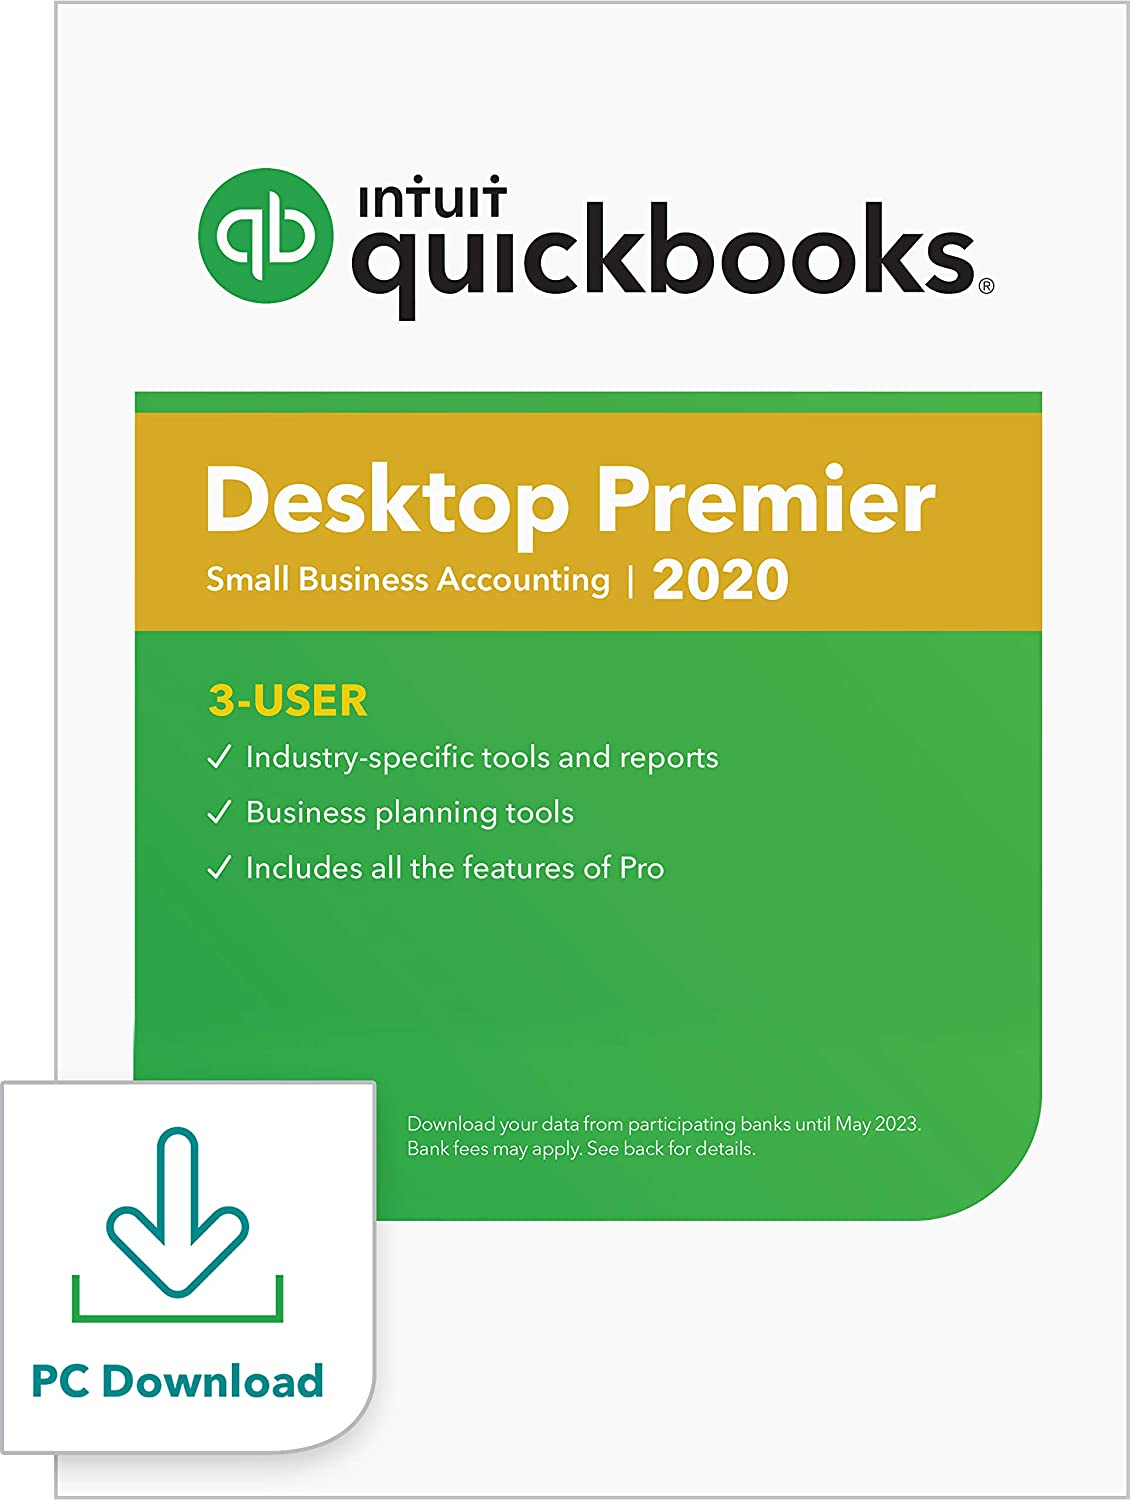 QuickBooks Desktop Premier 2020 Accounting Software for Business for Small Business - 3 User [PC Download]